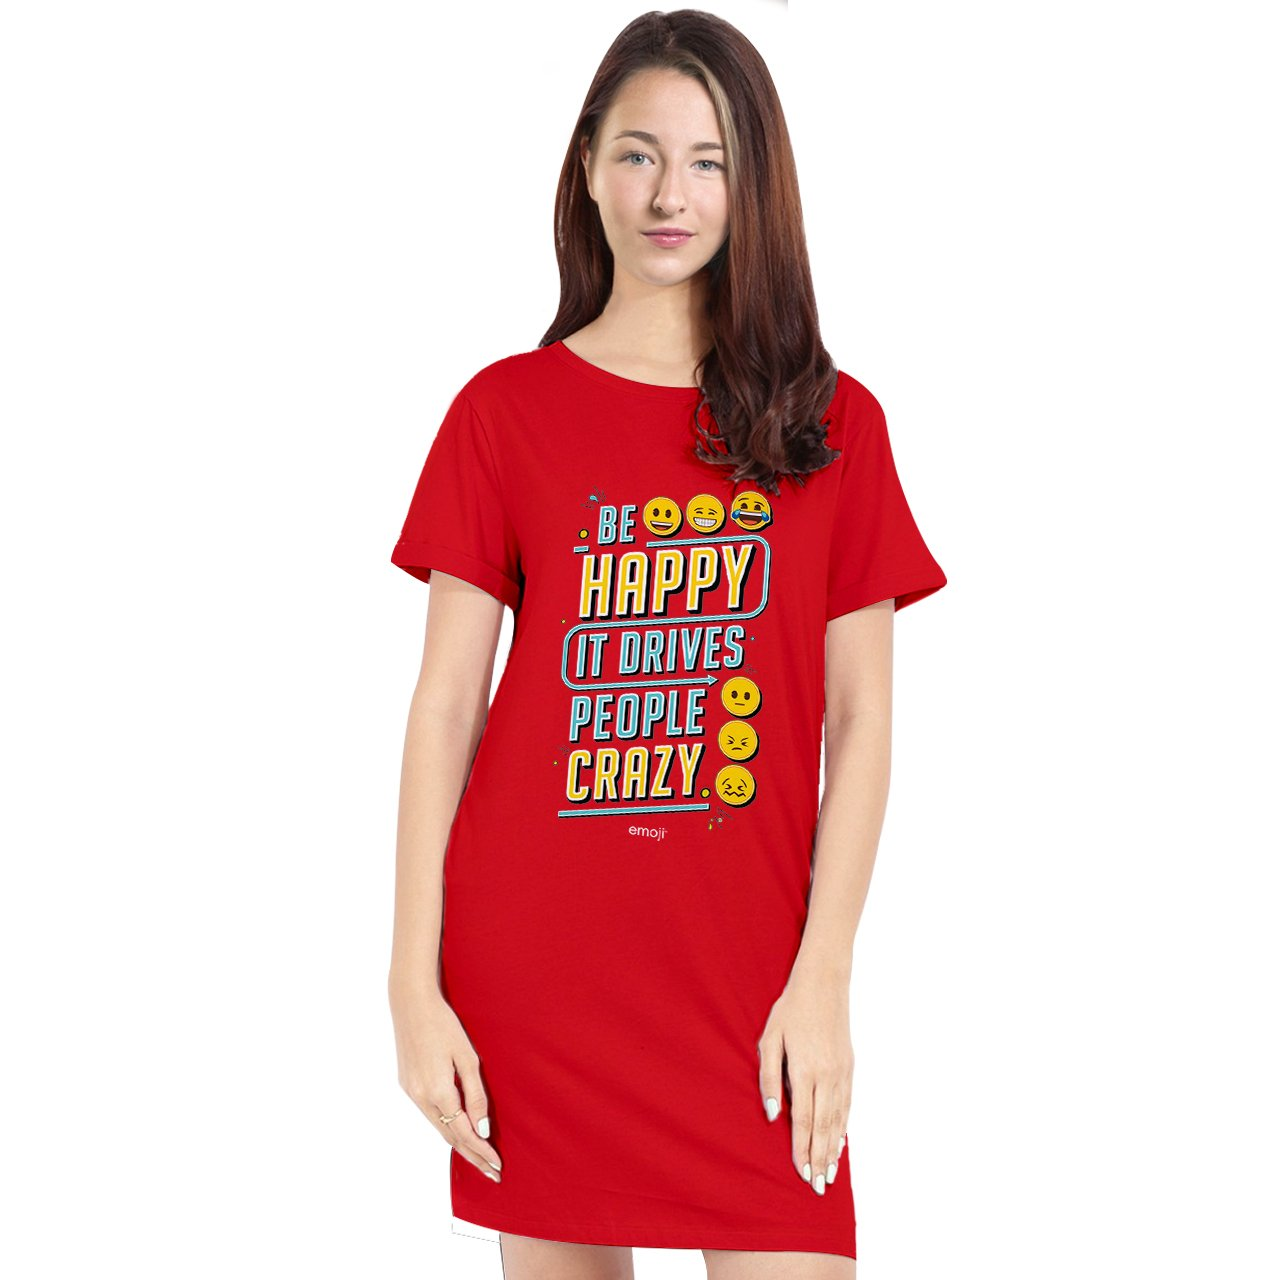 Official Licensed Emoji Printed T-Shirt Dress for Women - Be Happy It Drives People Crazy